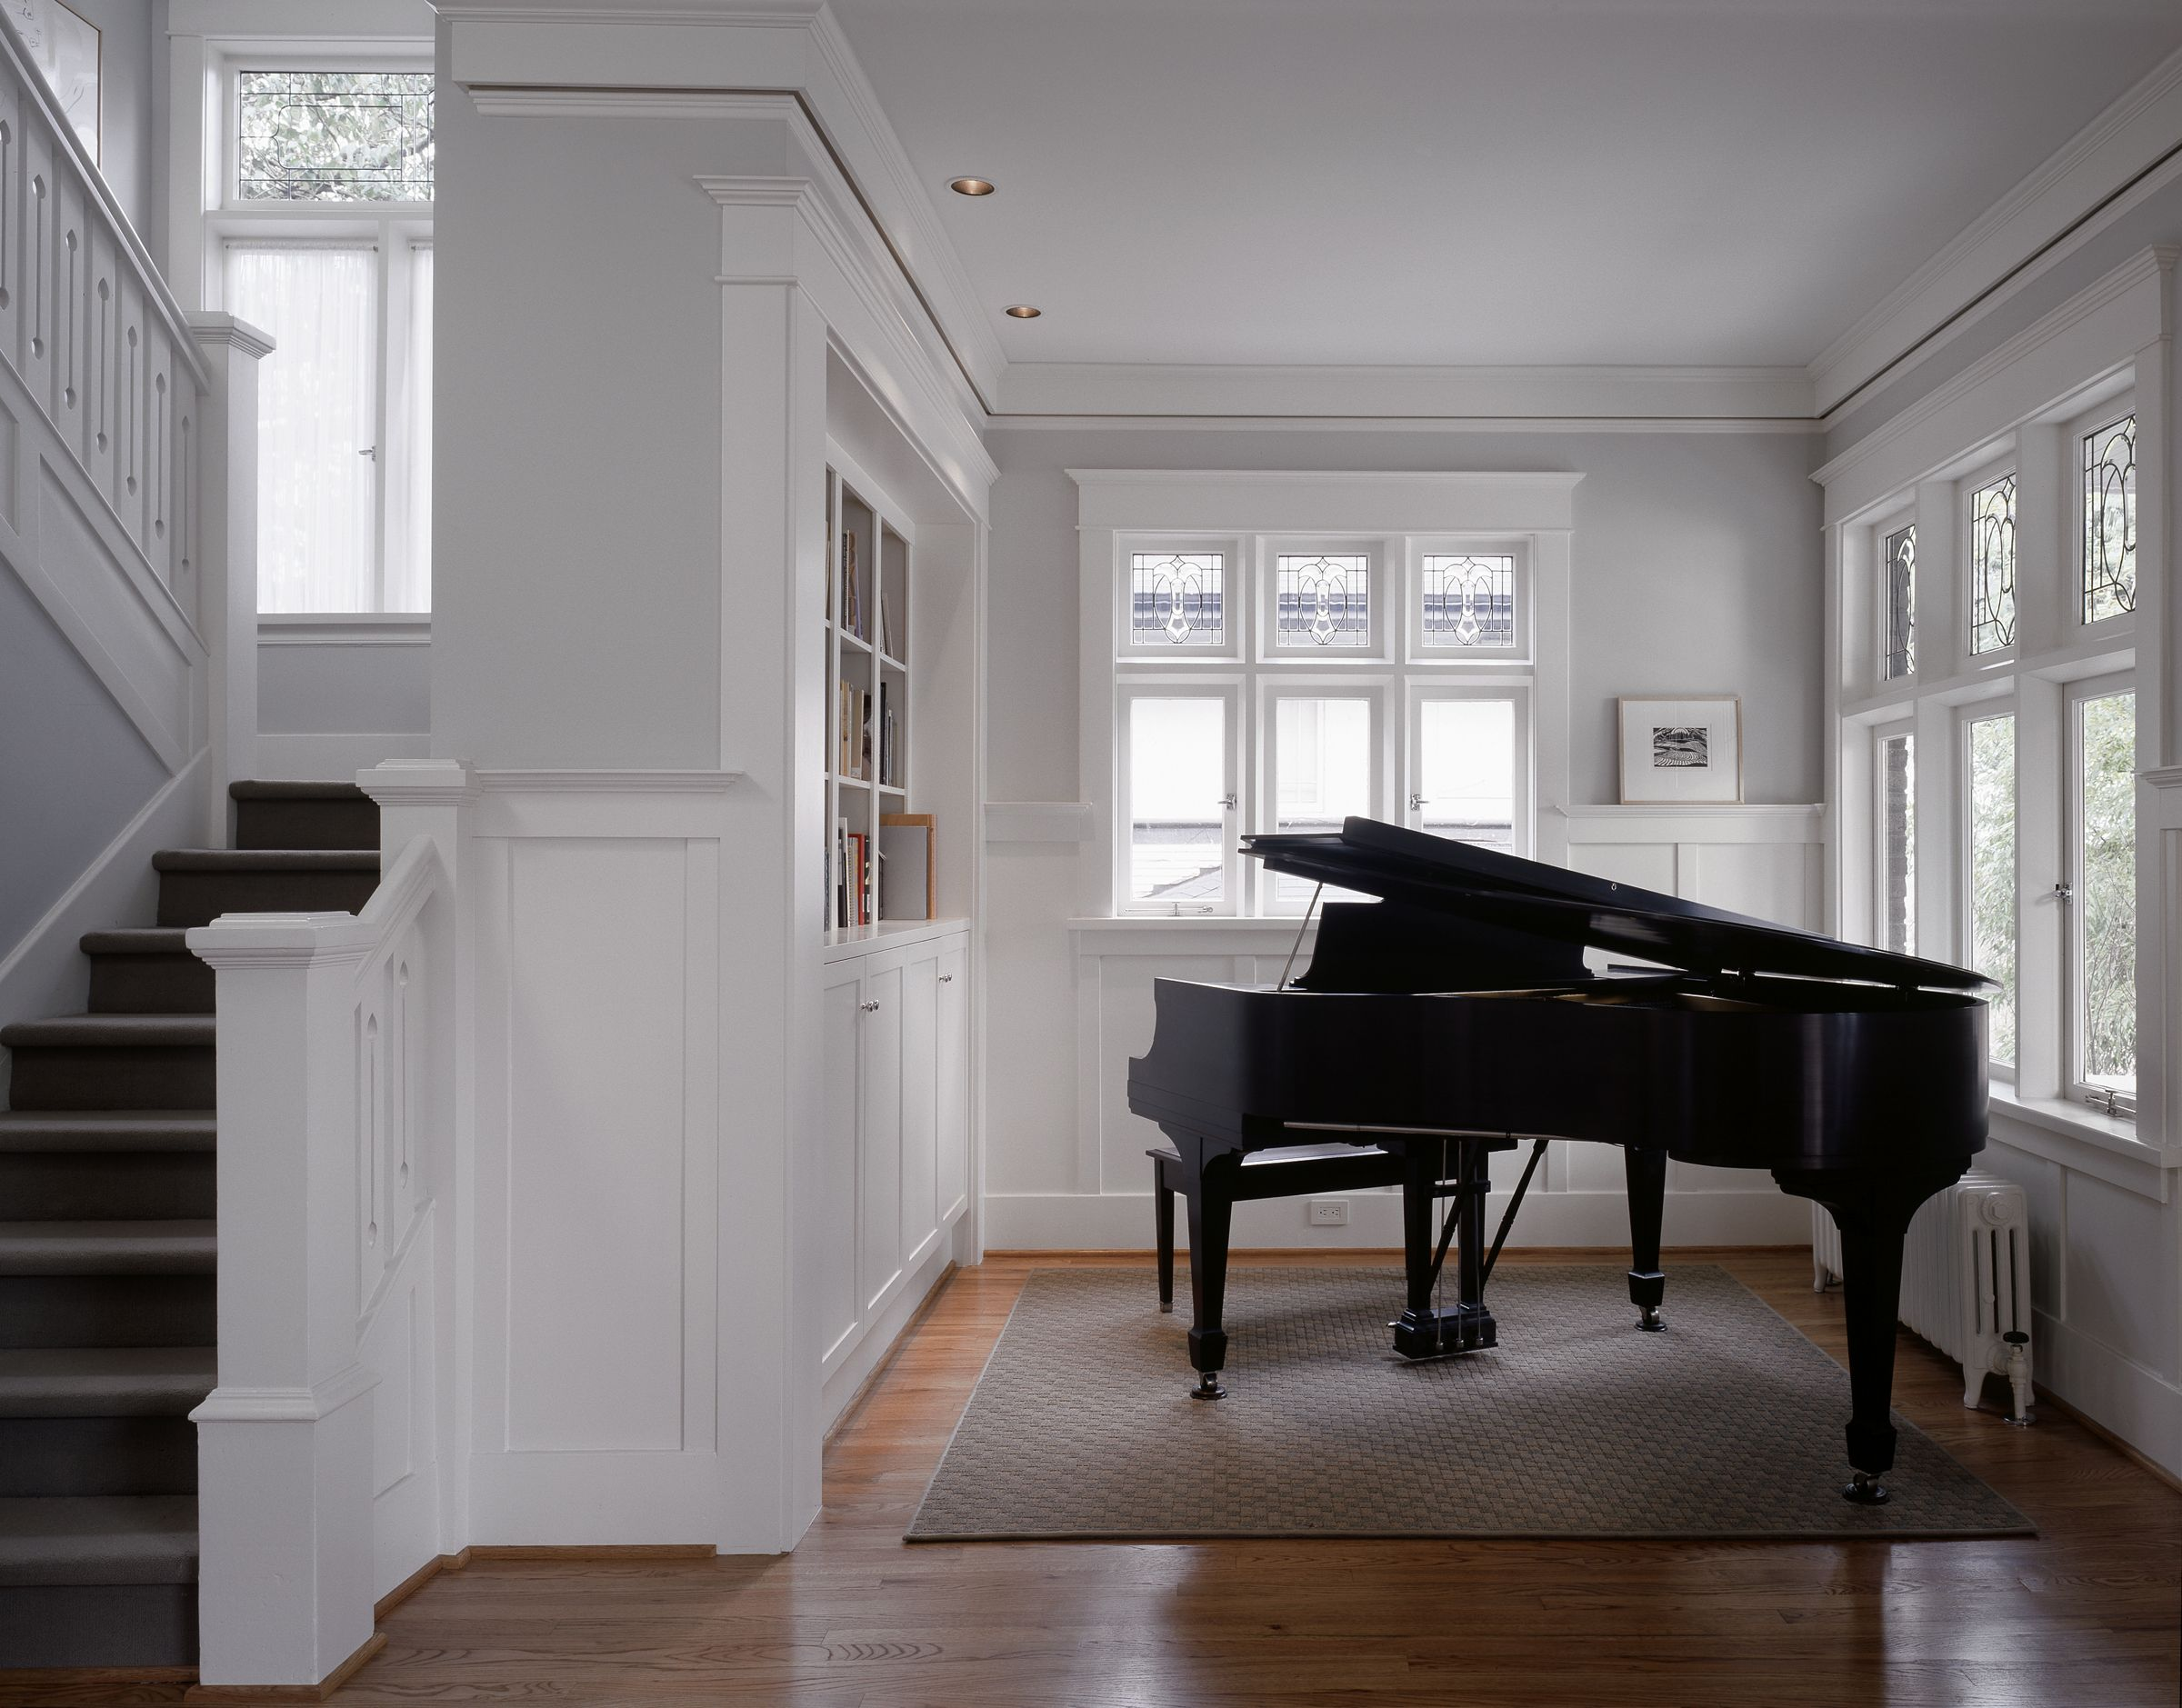 Removing a wall between the living room and a small parlor makes a